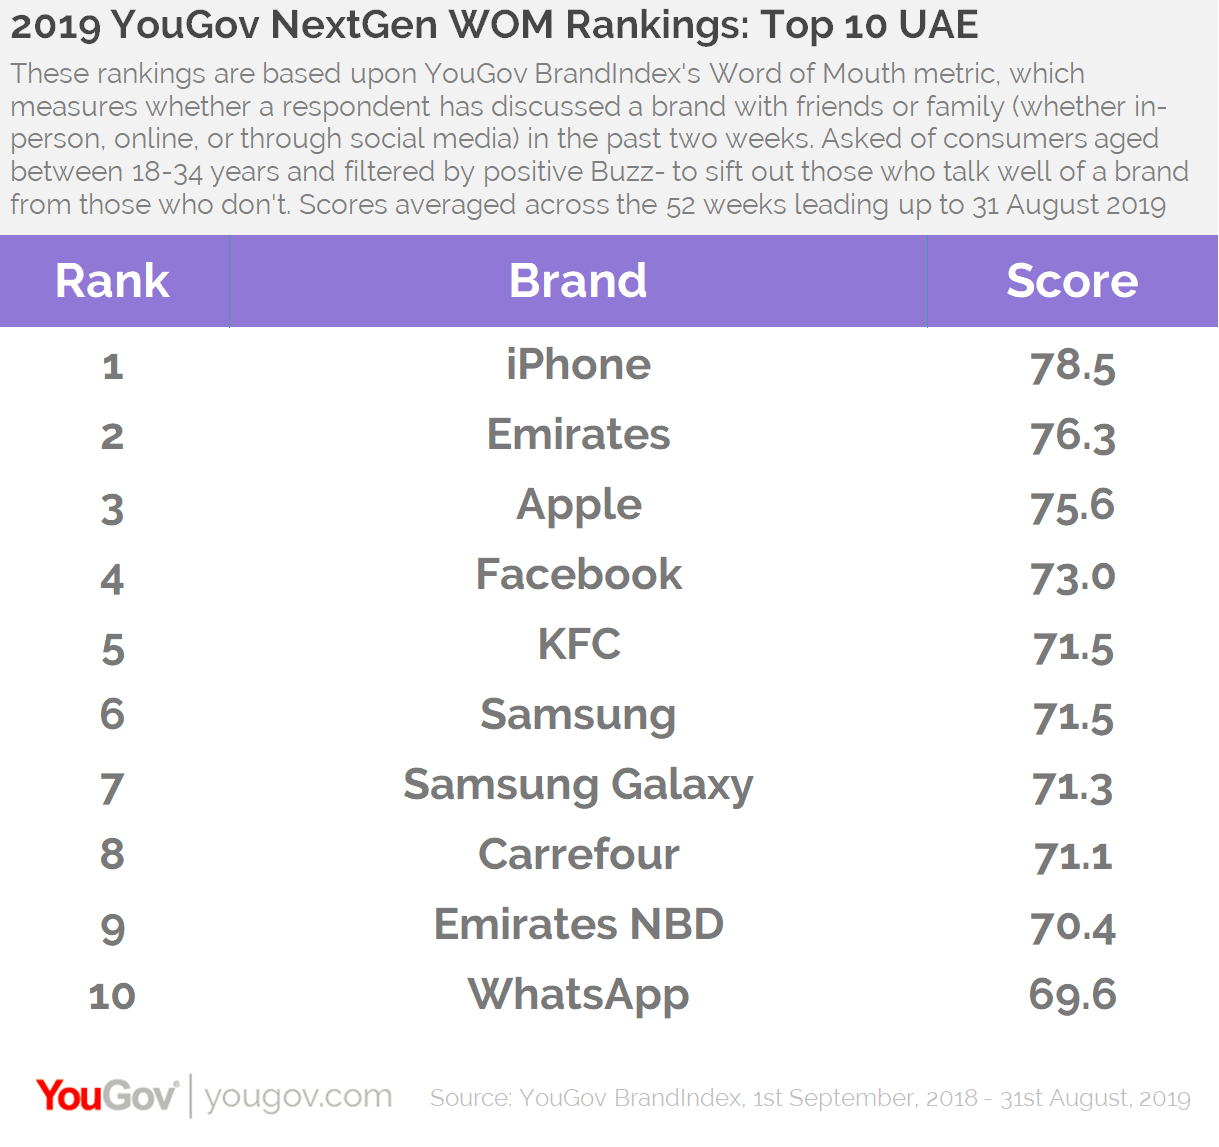 2019 WOM Rankings- Top 10 UAE